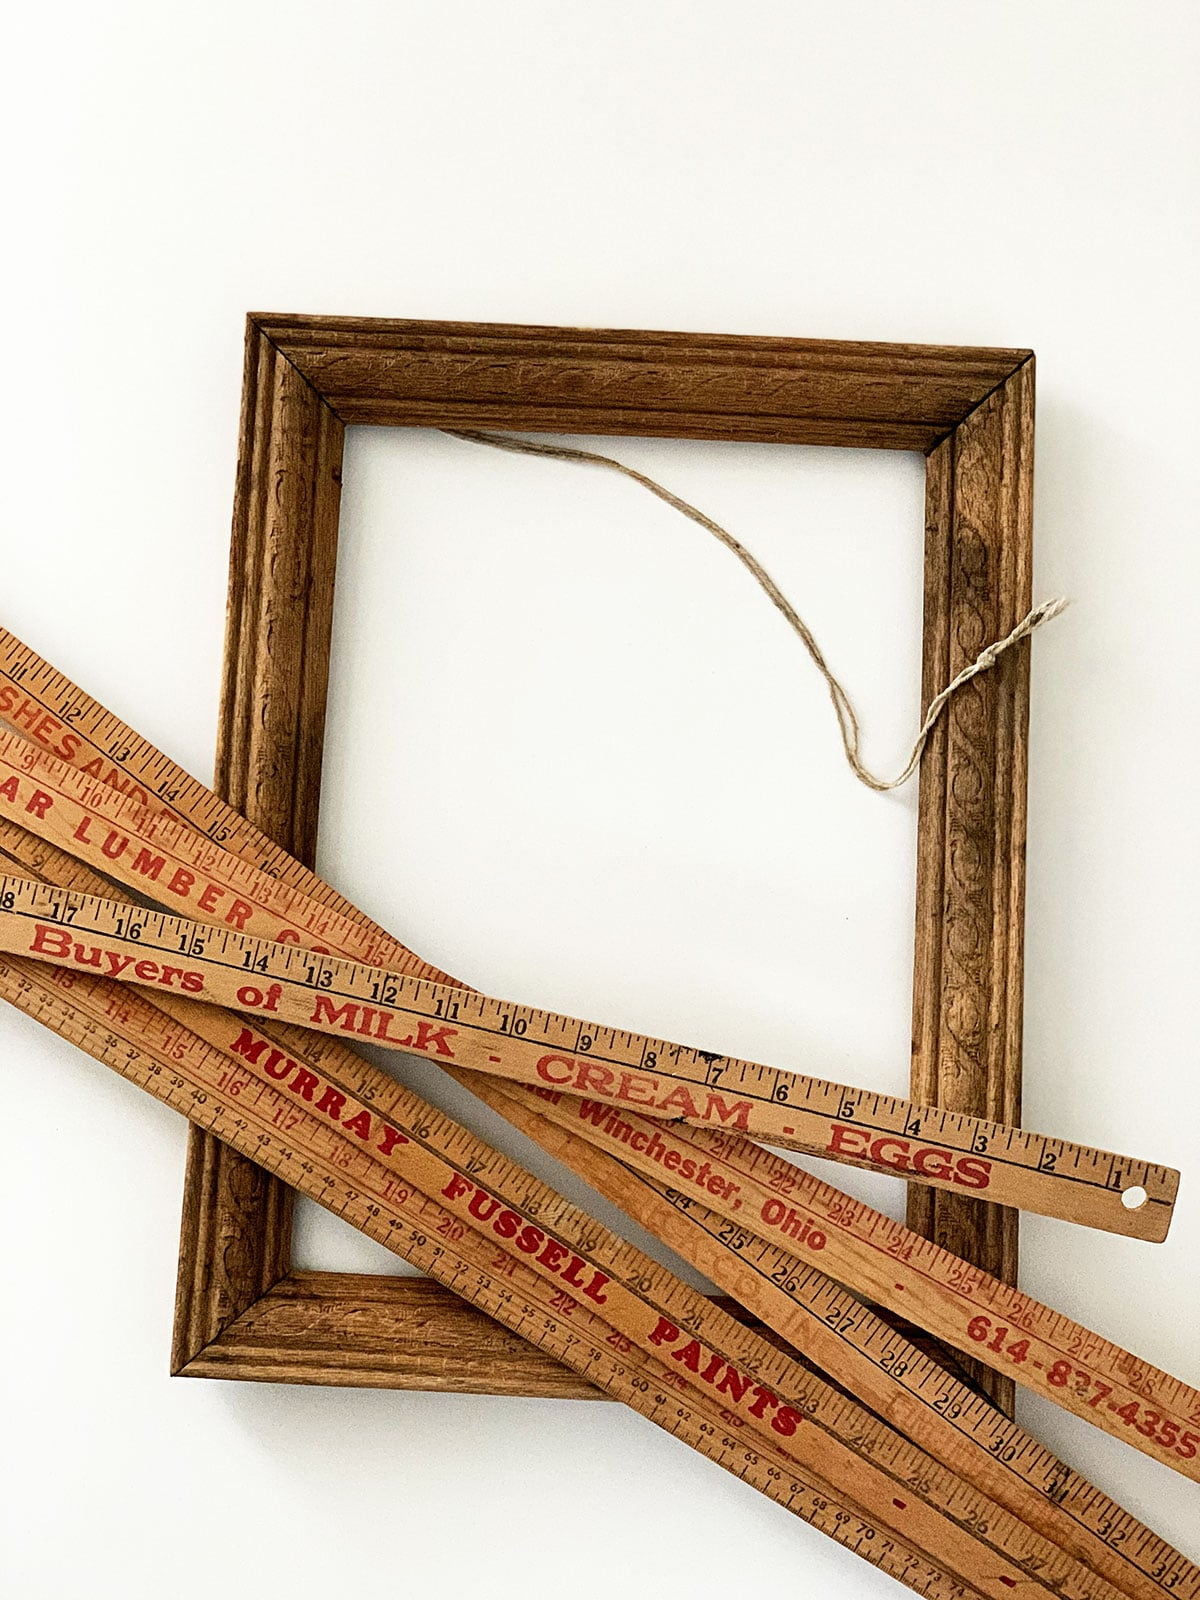 yardsticks and frame for repurposing project